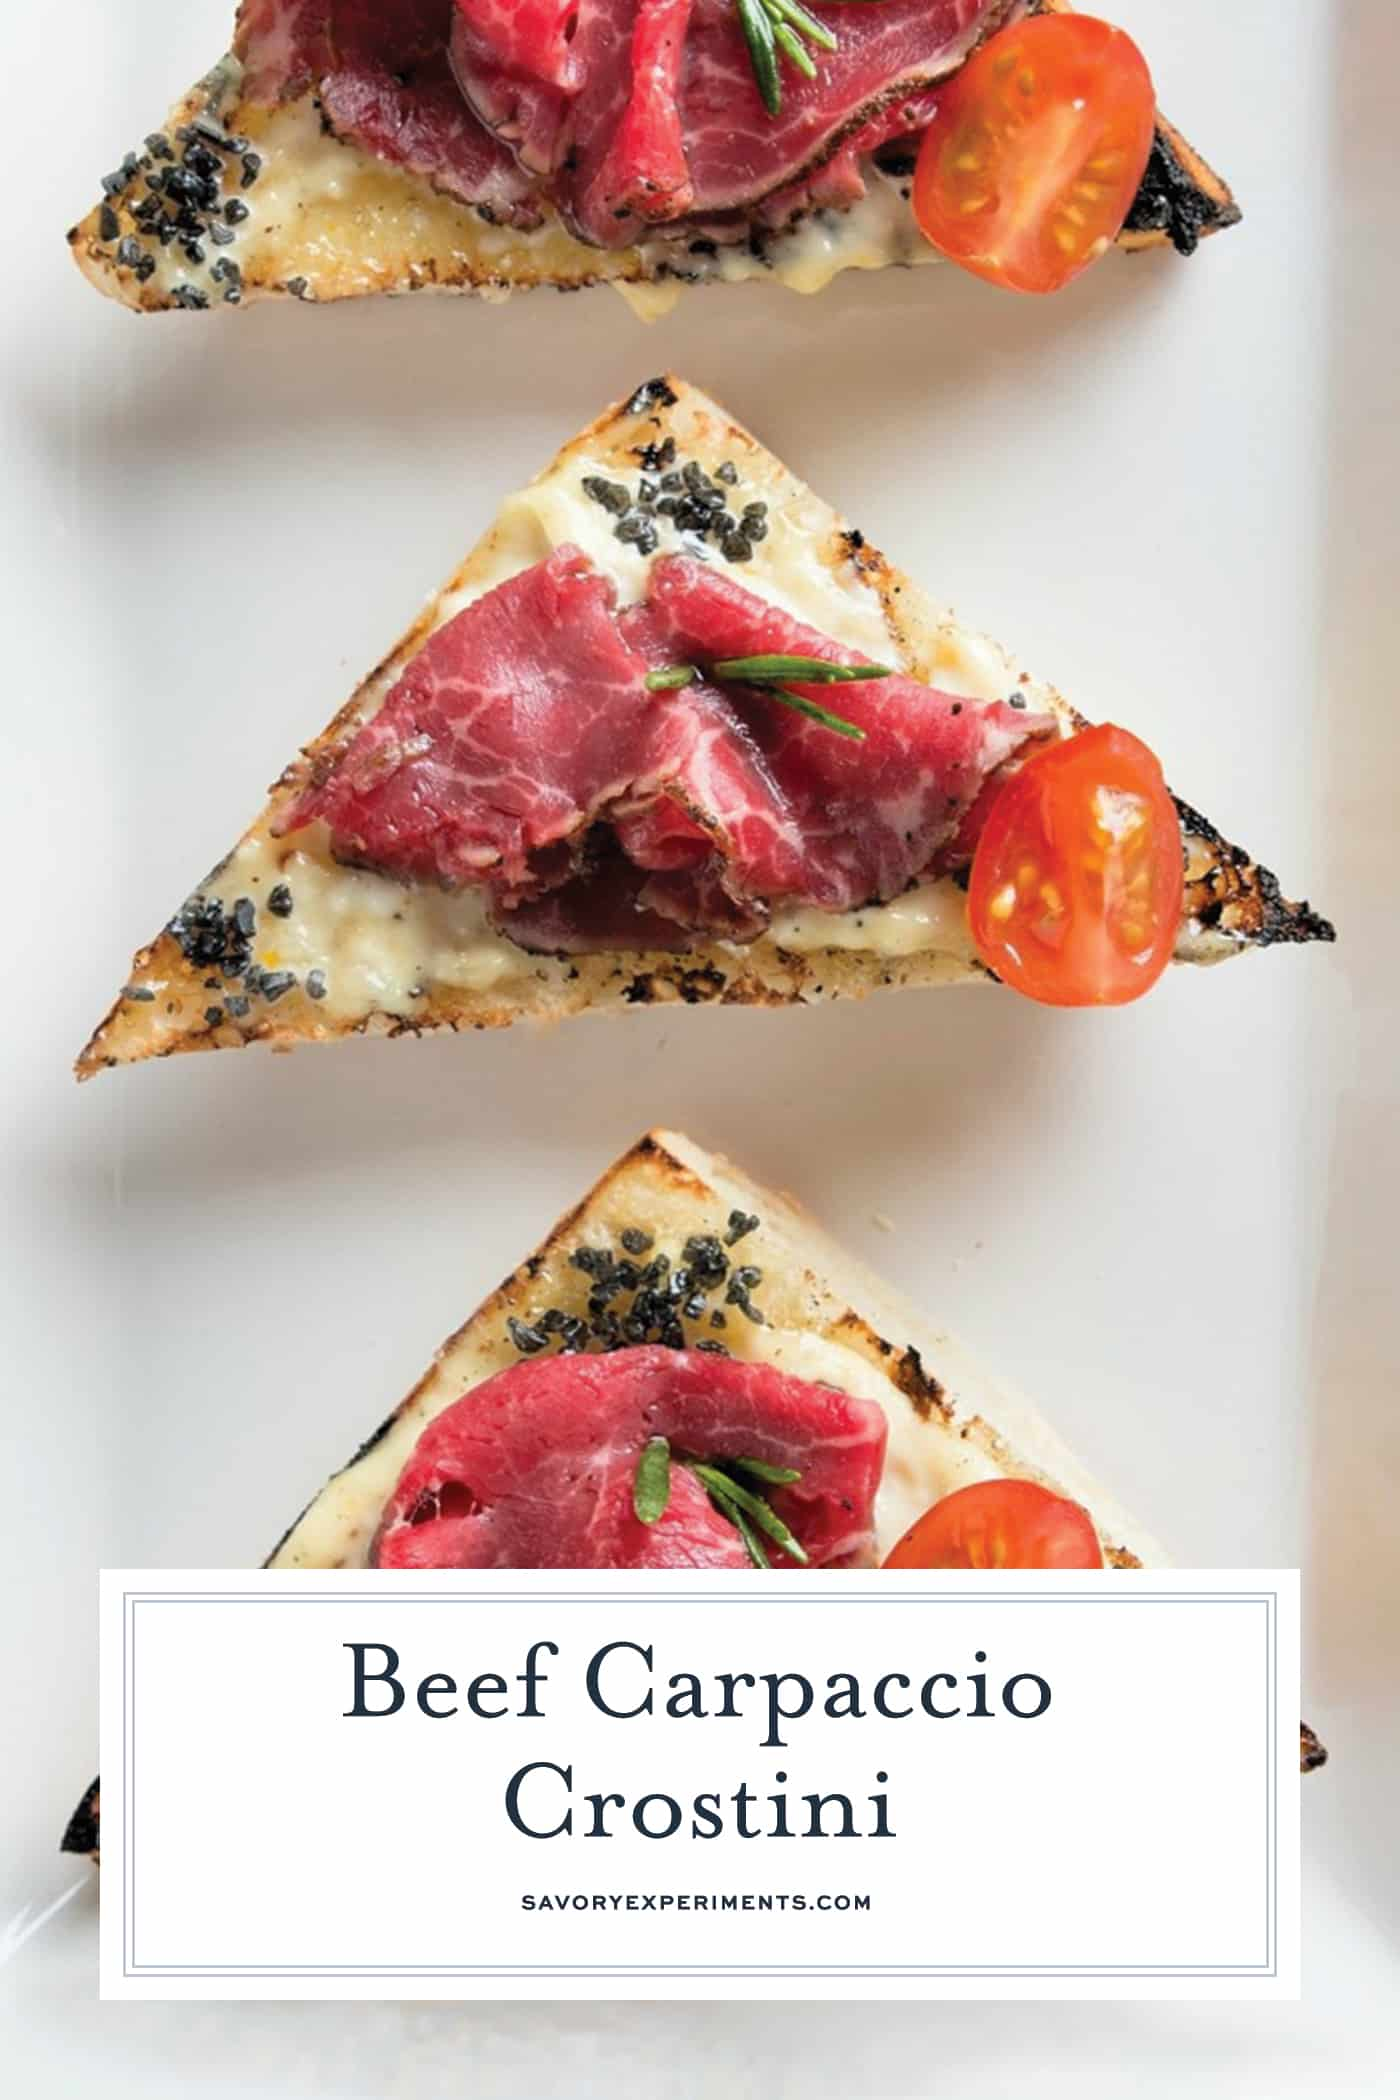 Beef Carpaccio Crostini are thinly sliced pieces of beef with garlic aioli, black sea salt and fresh rosemary with tomato. The perfect party appetizer. #beefcarpaccio #crostinirecipes www.savoryexperiments.com